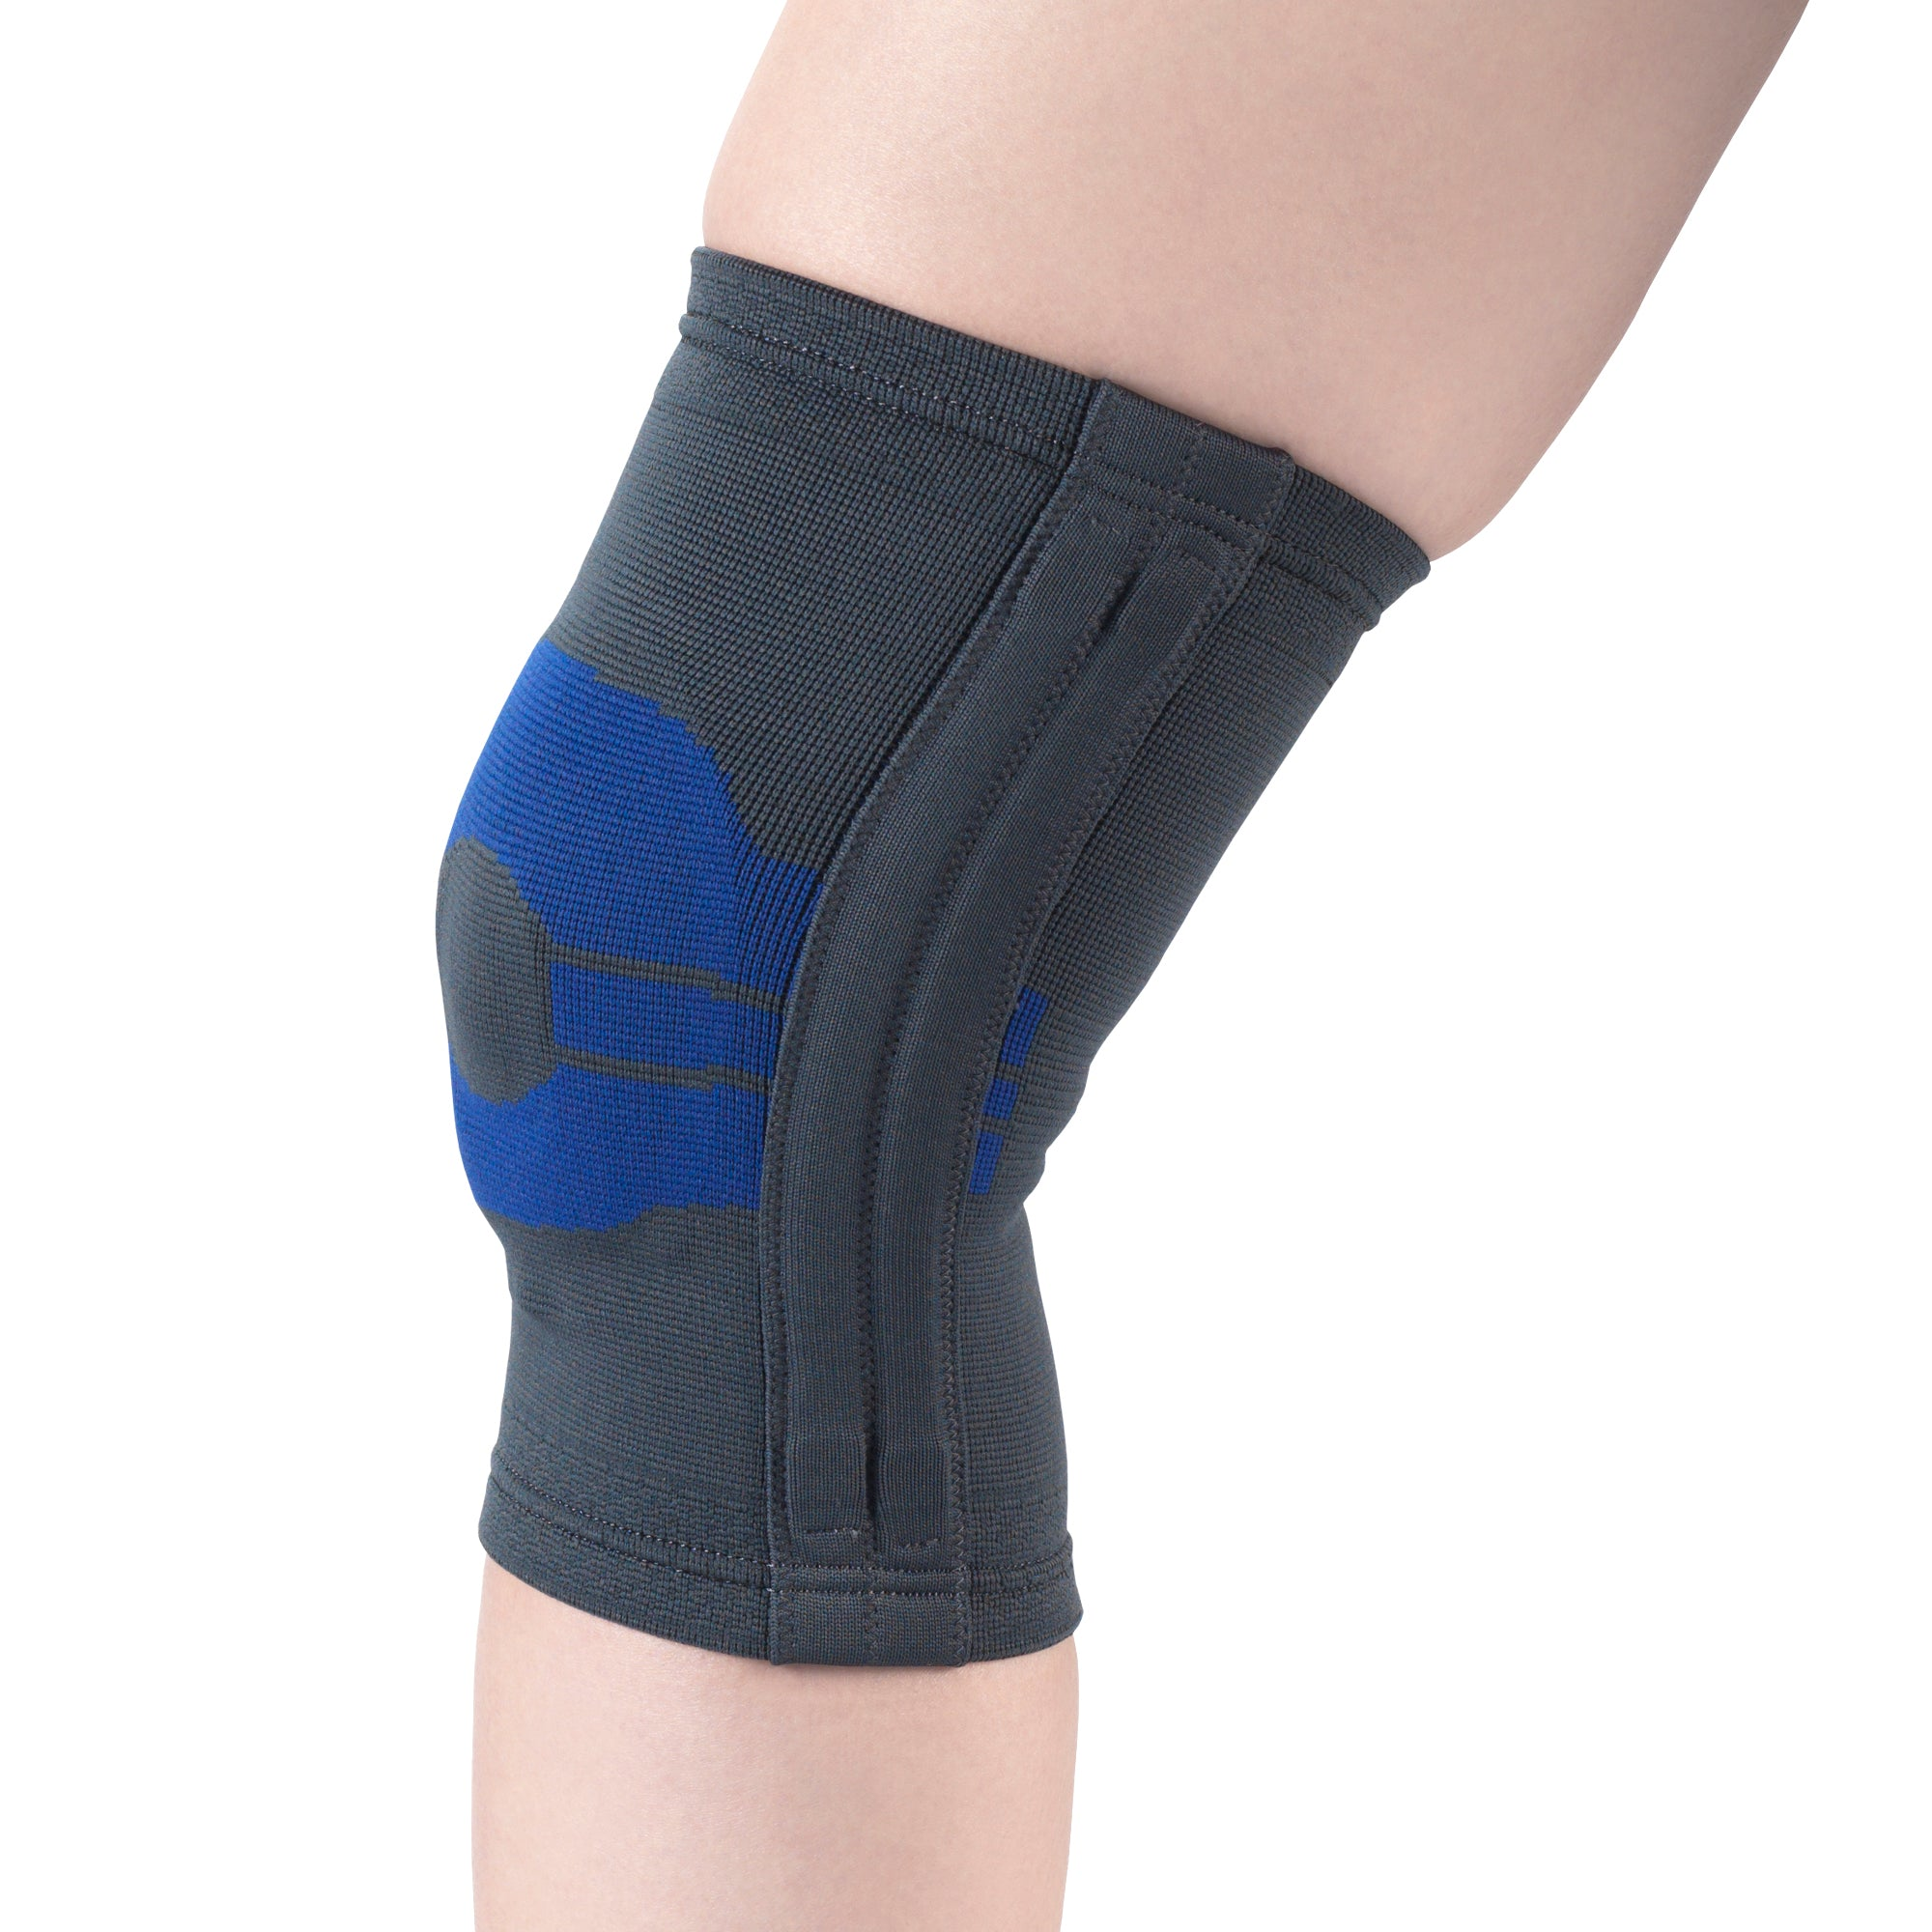 --Side of KNEE SUPPORT WITH COMPRESSION GEL INSERT AND FLEXIBLE STAYS --